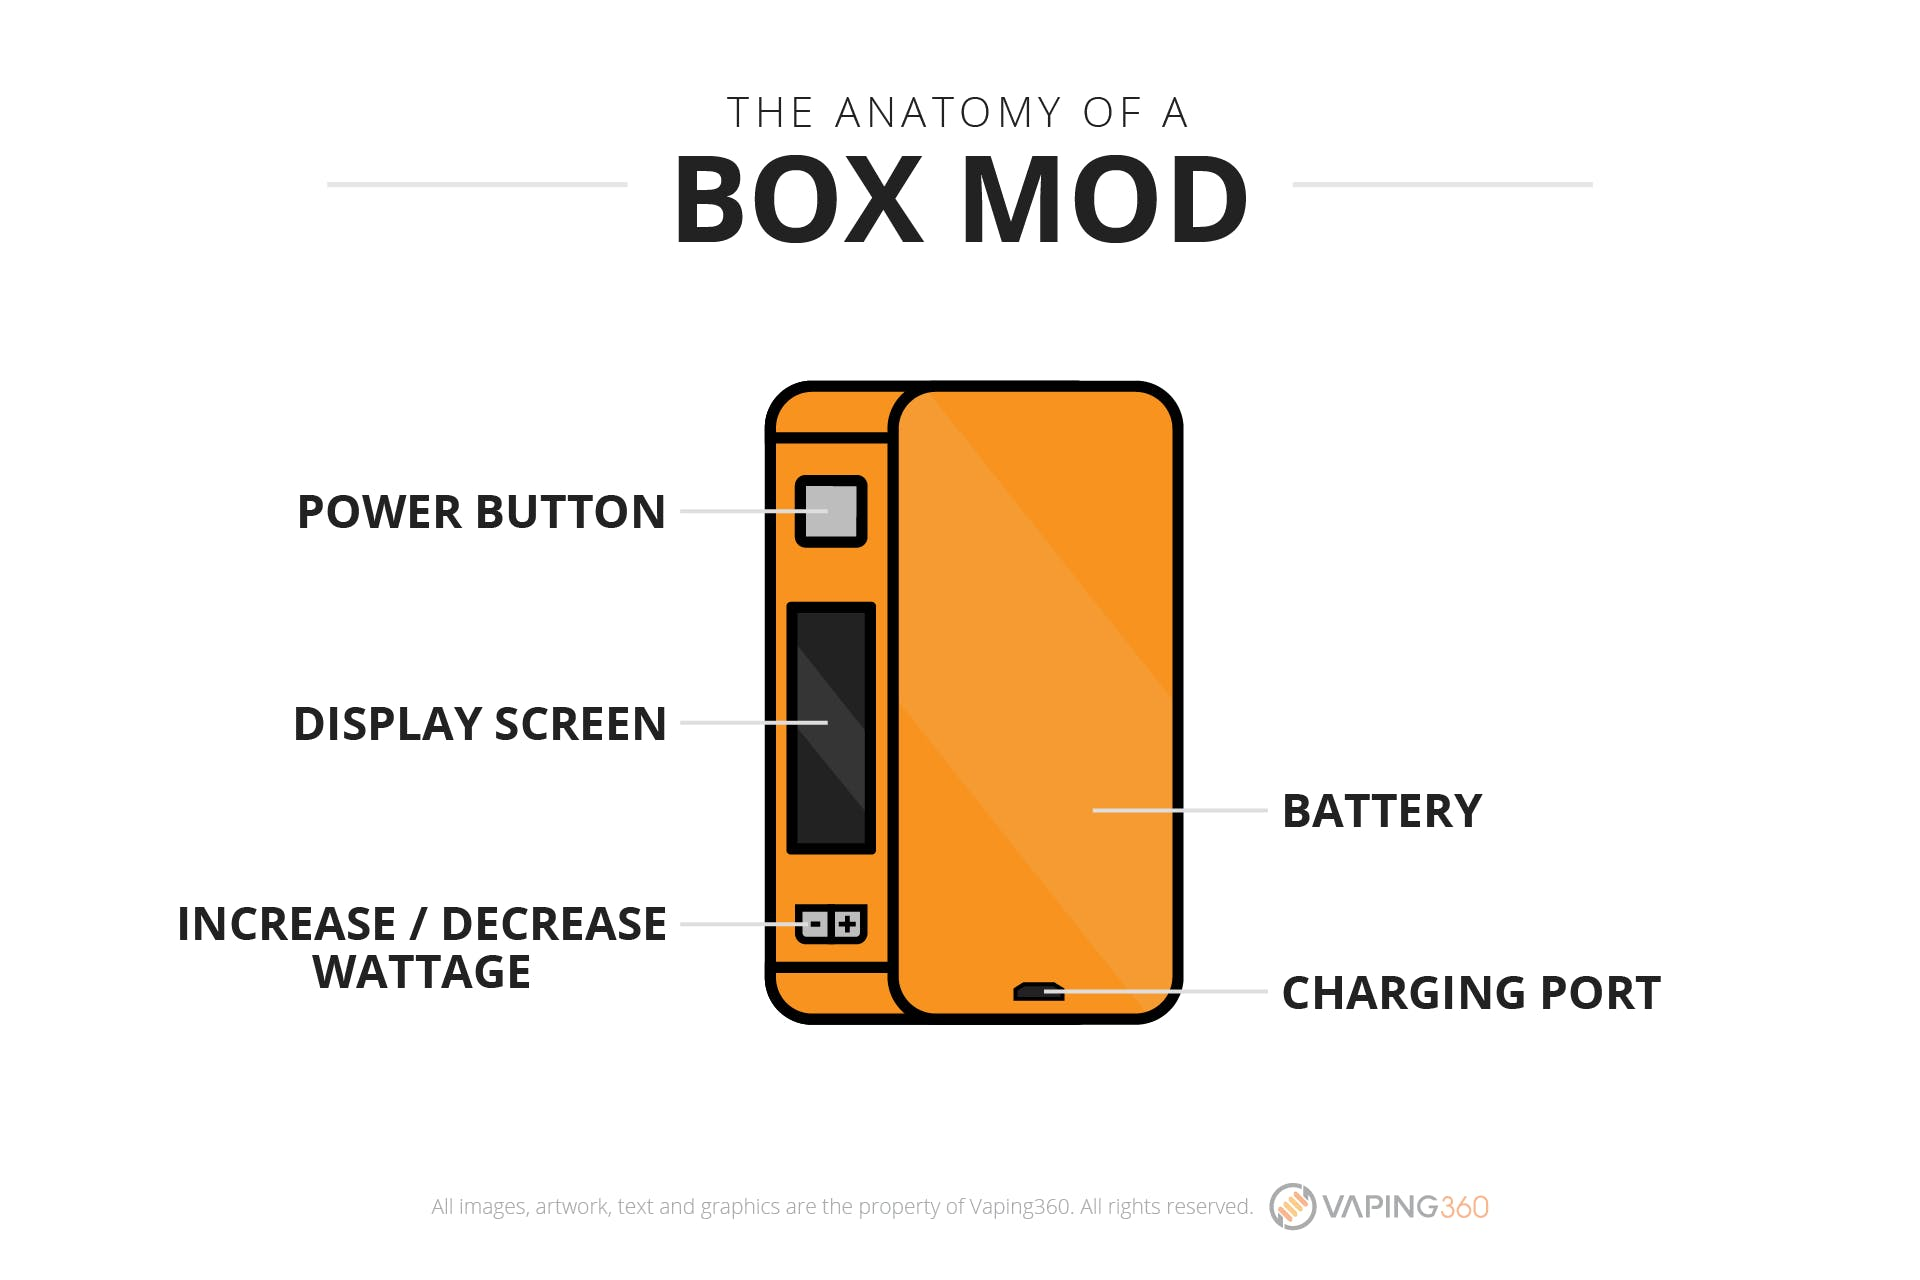 What is a box mod?